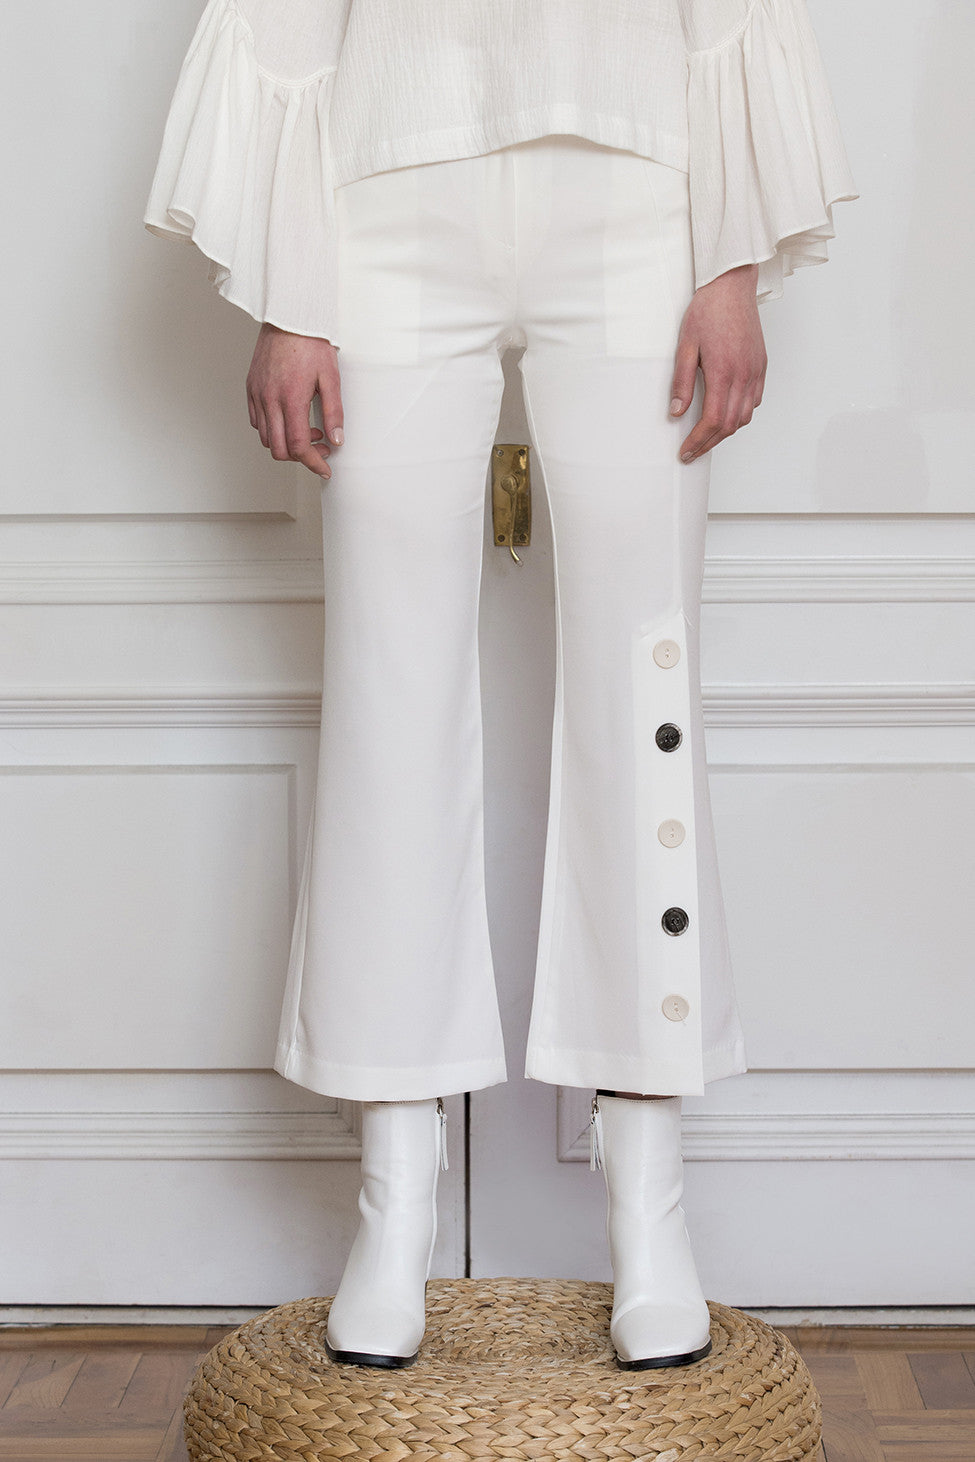 The Adalyn Pant in White featuring on-seam zip fly and hook closure, slanted front pockets, decorative button detail down left side. Partially lined. Cropped silhouette.